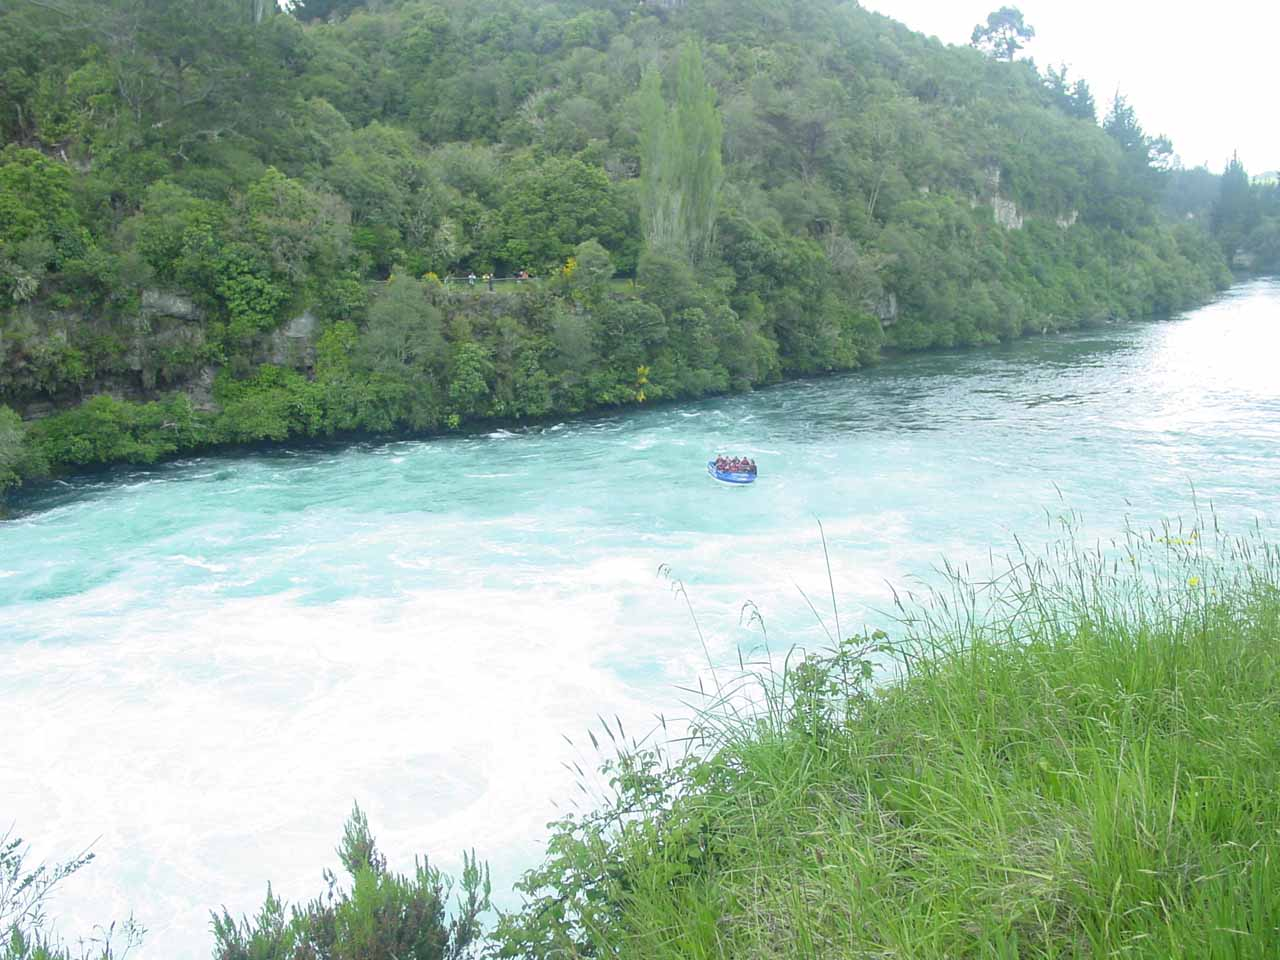 Looking downstream from Huka Falls towards a jet boat tour